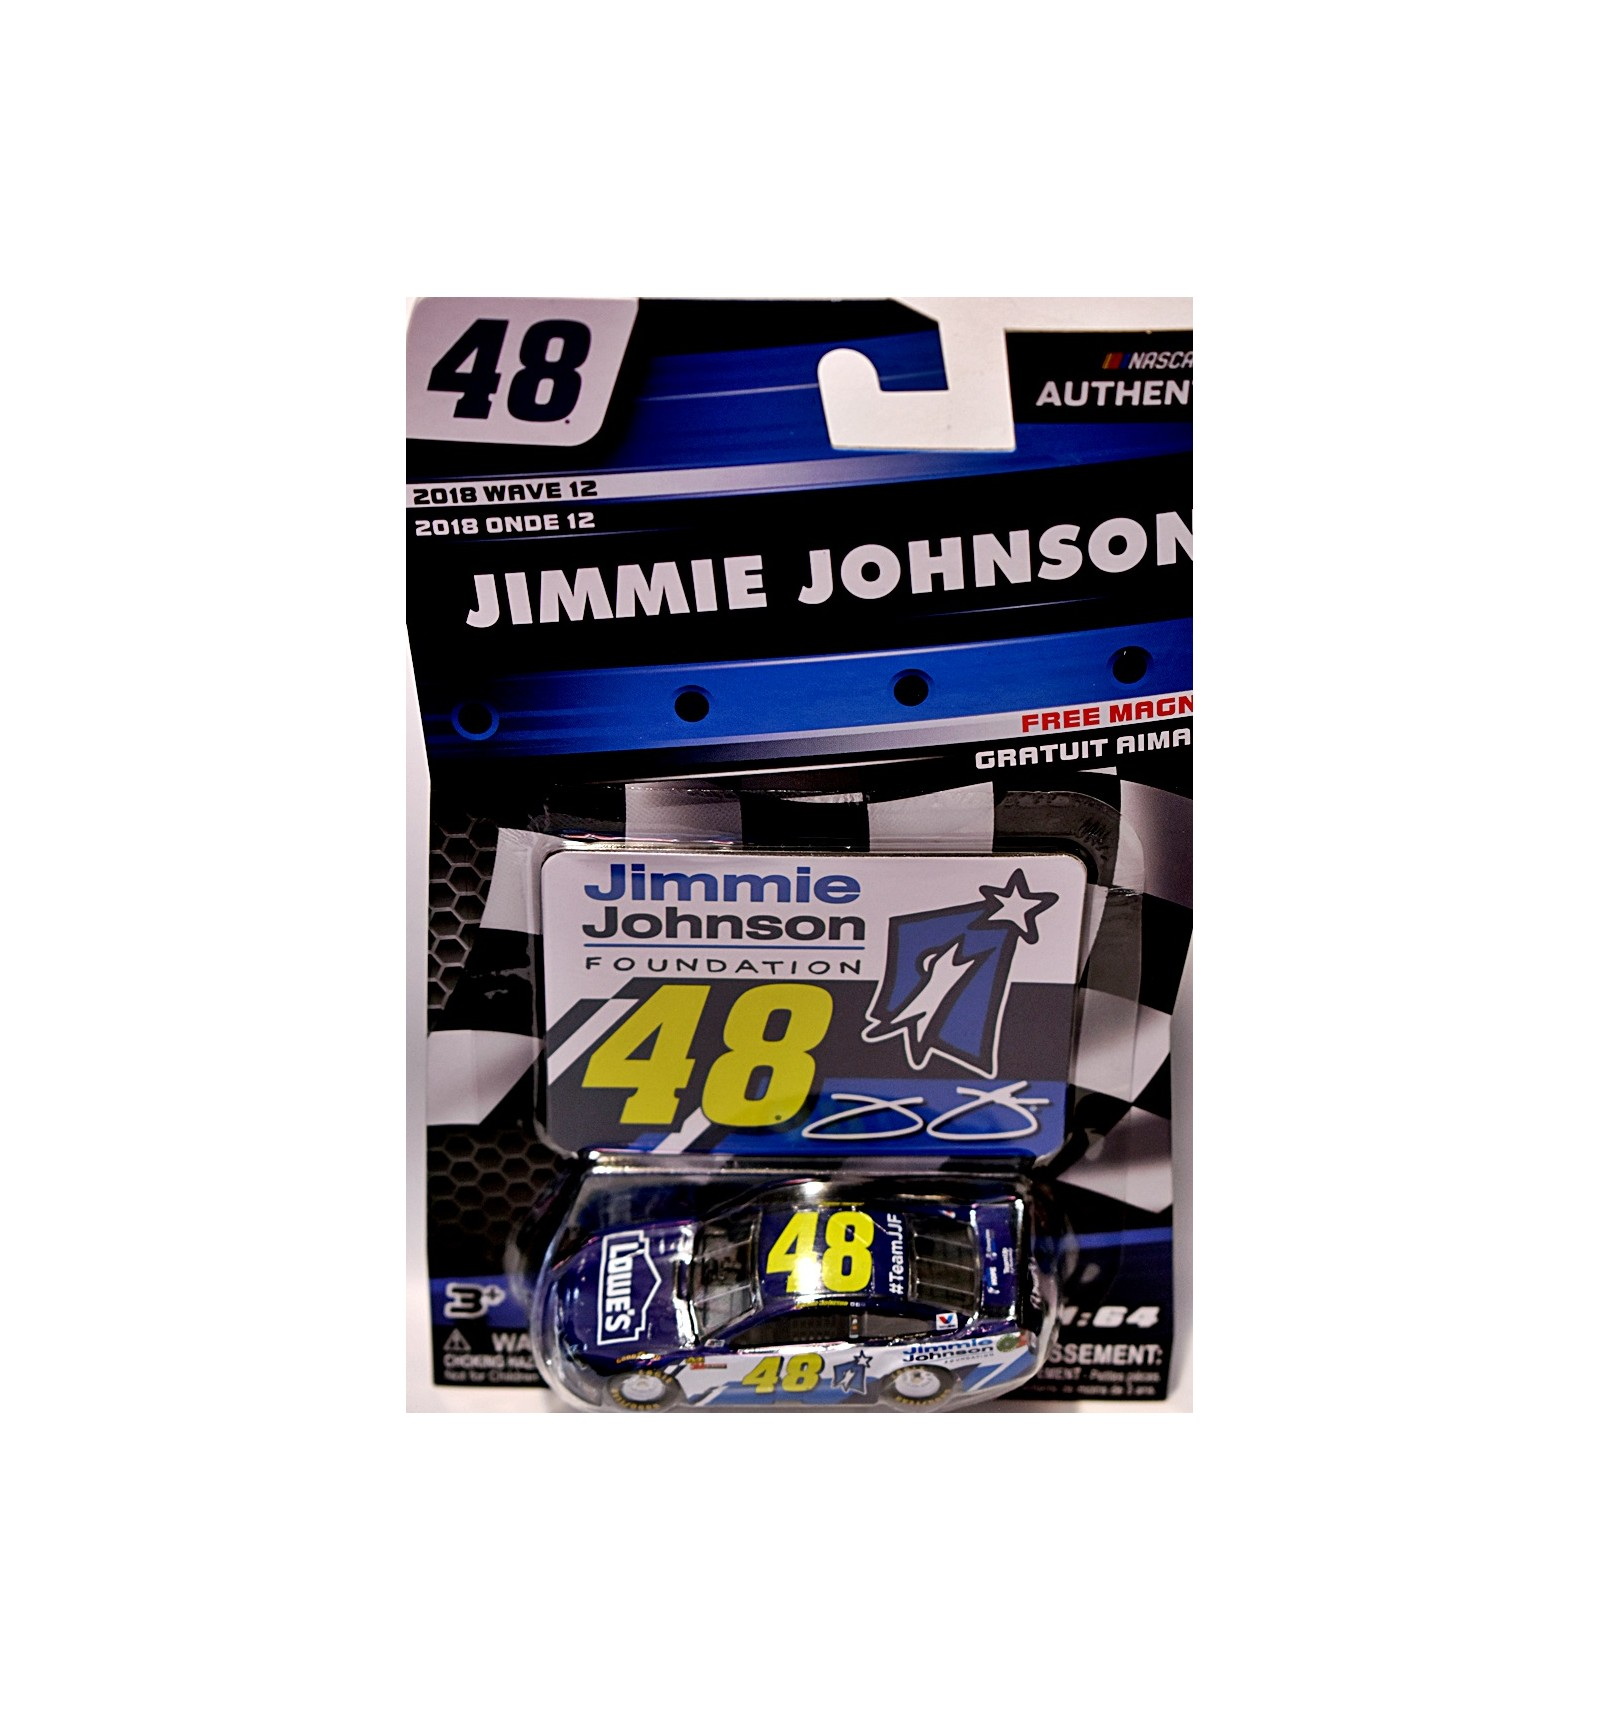 Nascar Authentics Hendrick Motorsports Jimmie Johnson Lowes Chevrolet Camaro Jimmie Johnson Foundation Global Diecast Direct